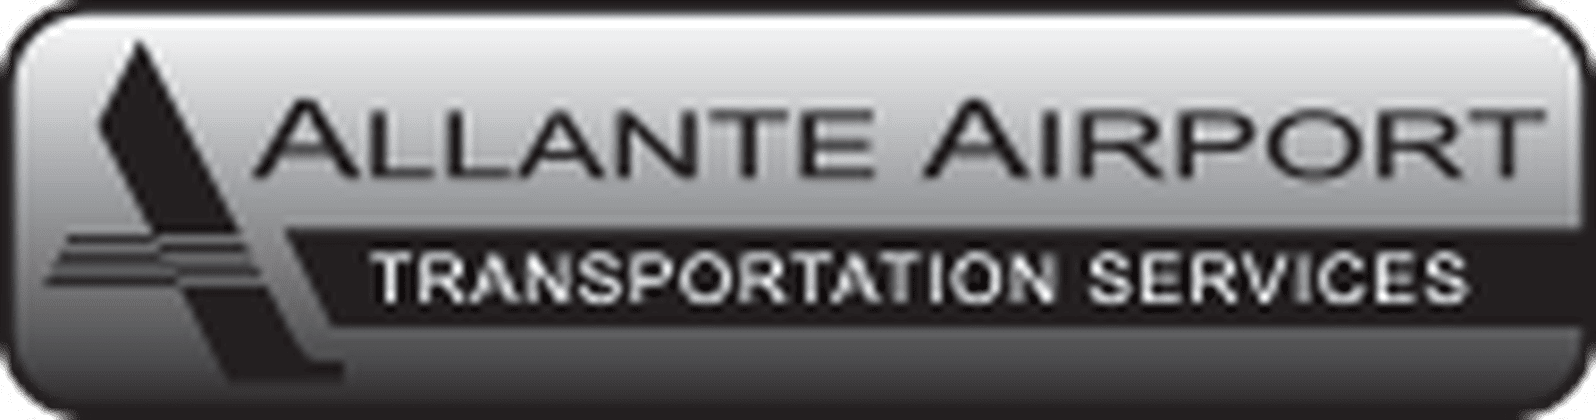 Allante Airport Transportation Services Logo